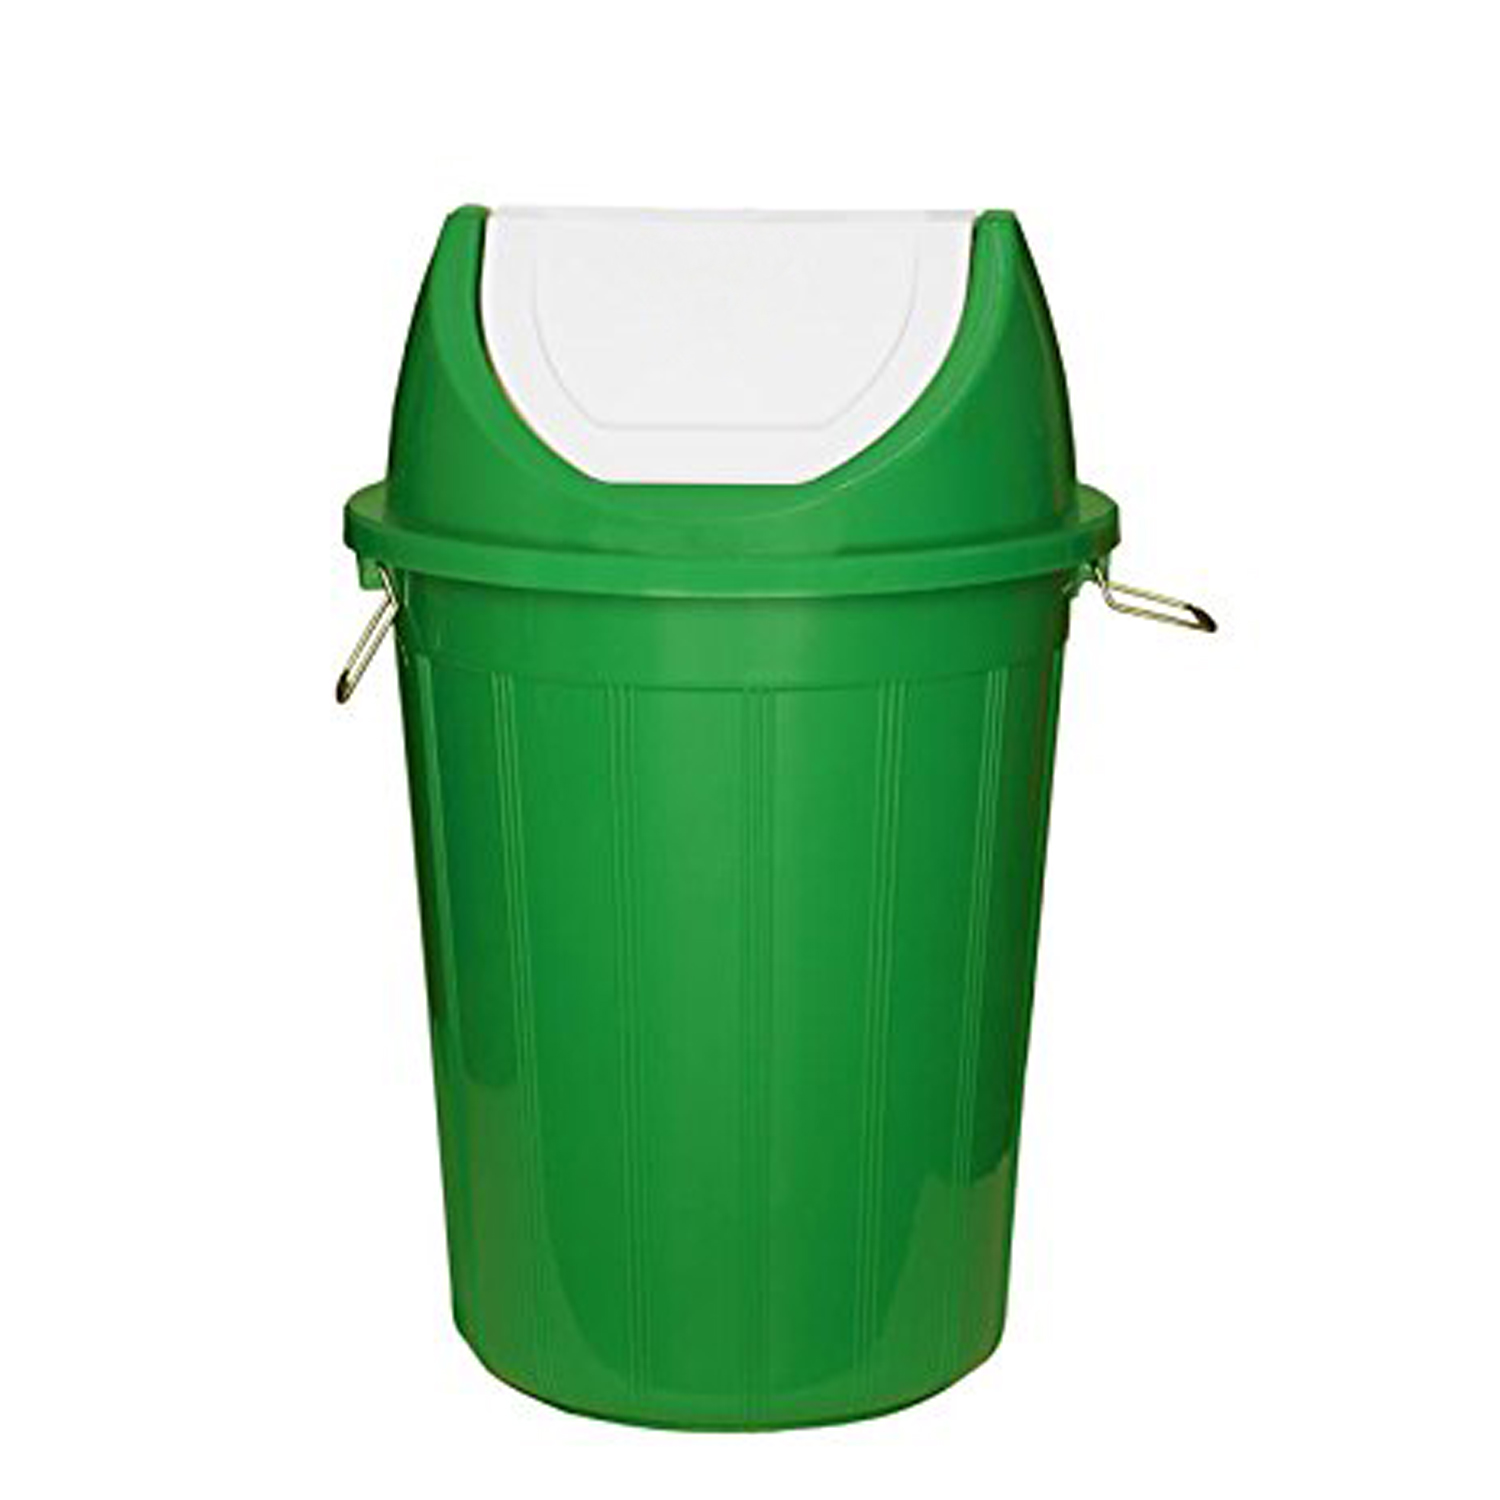 Kuber Industries Plastic Large Size Dustbin/Garbage Bin (Green) CTKTC1632